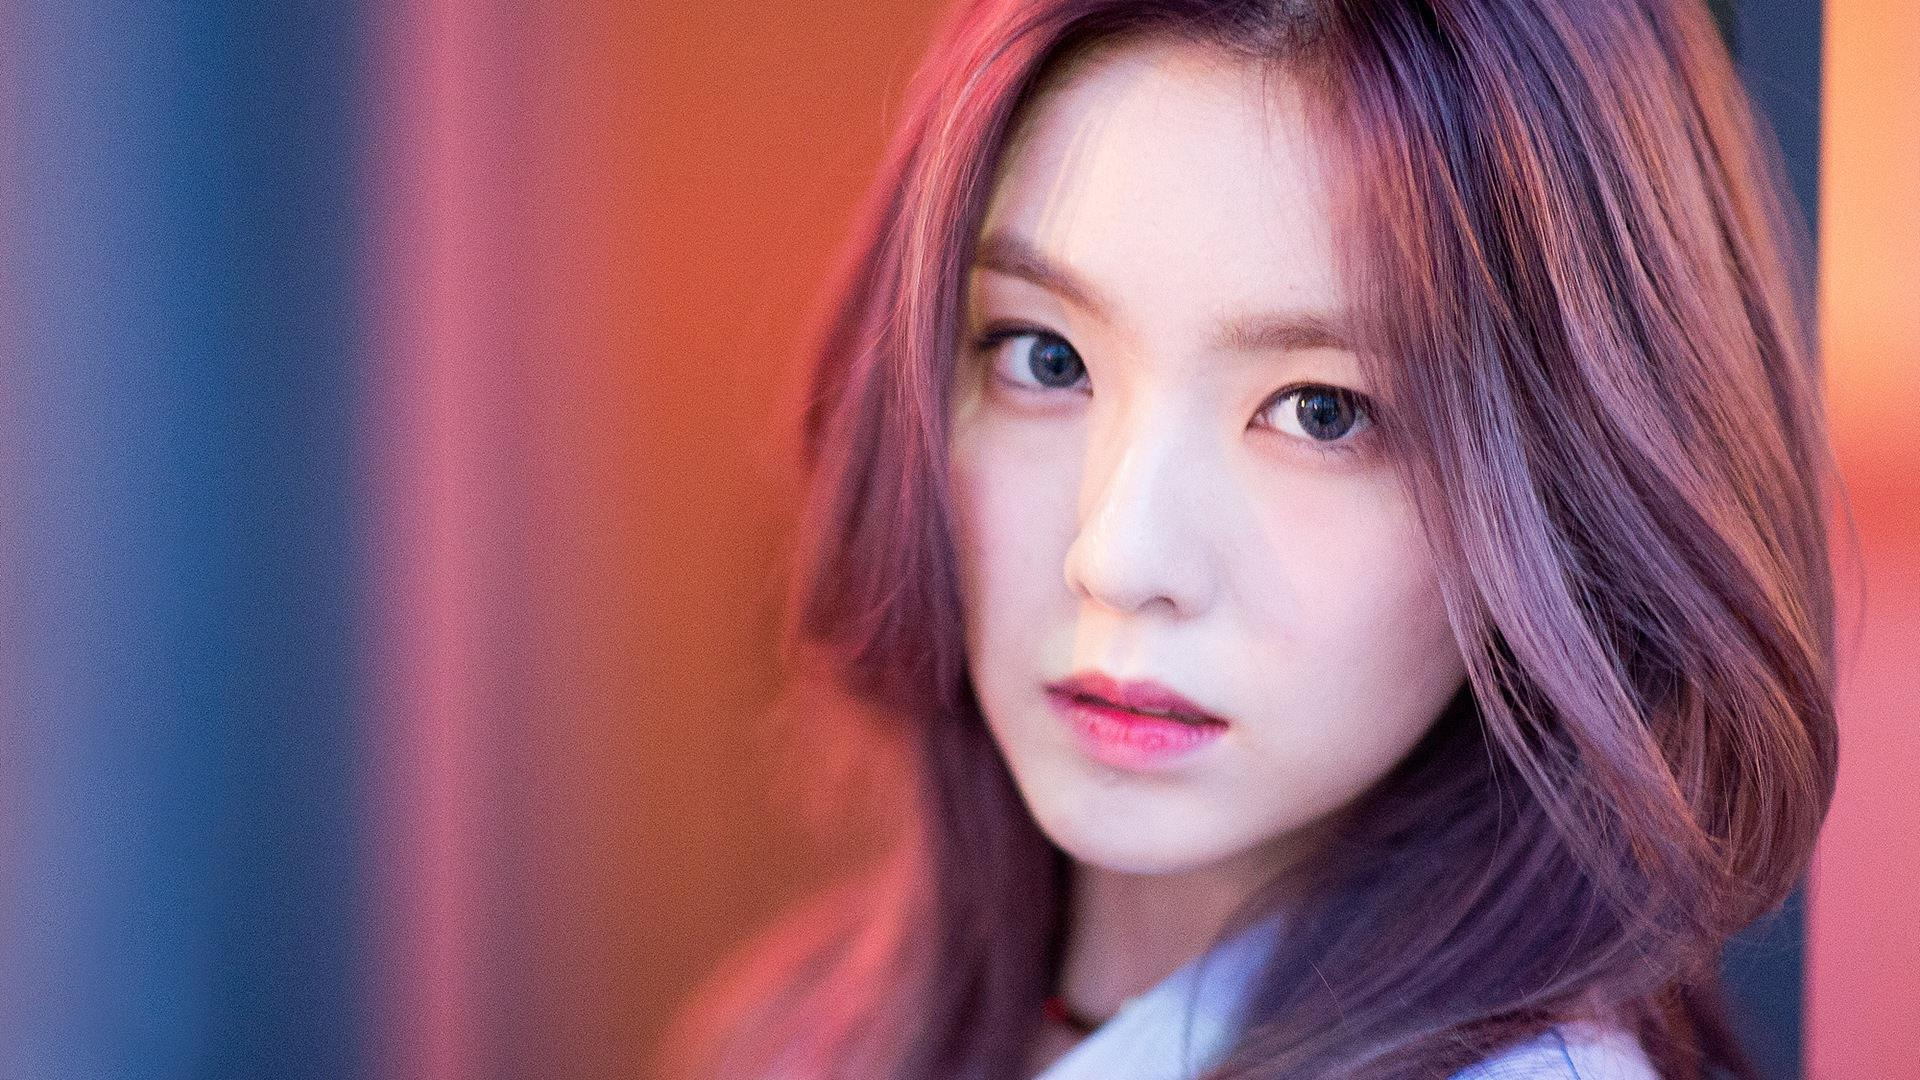 Irene Red Velvet Wallpapers Wallpaper Cave